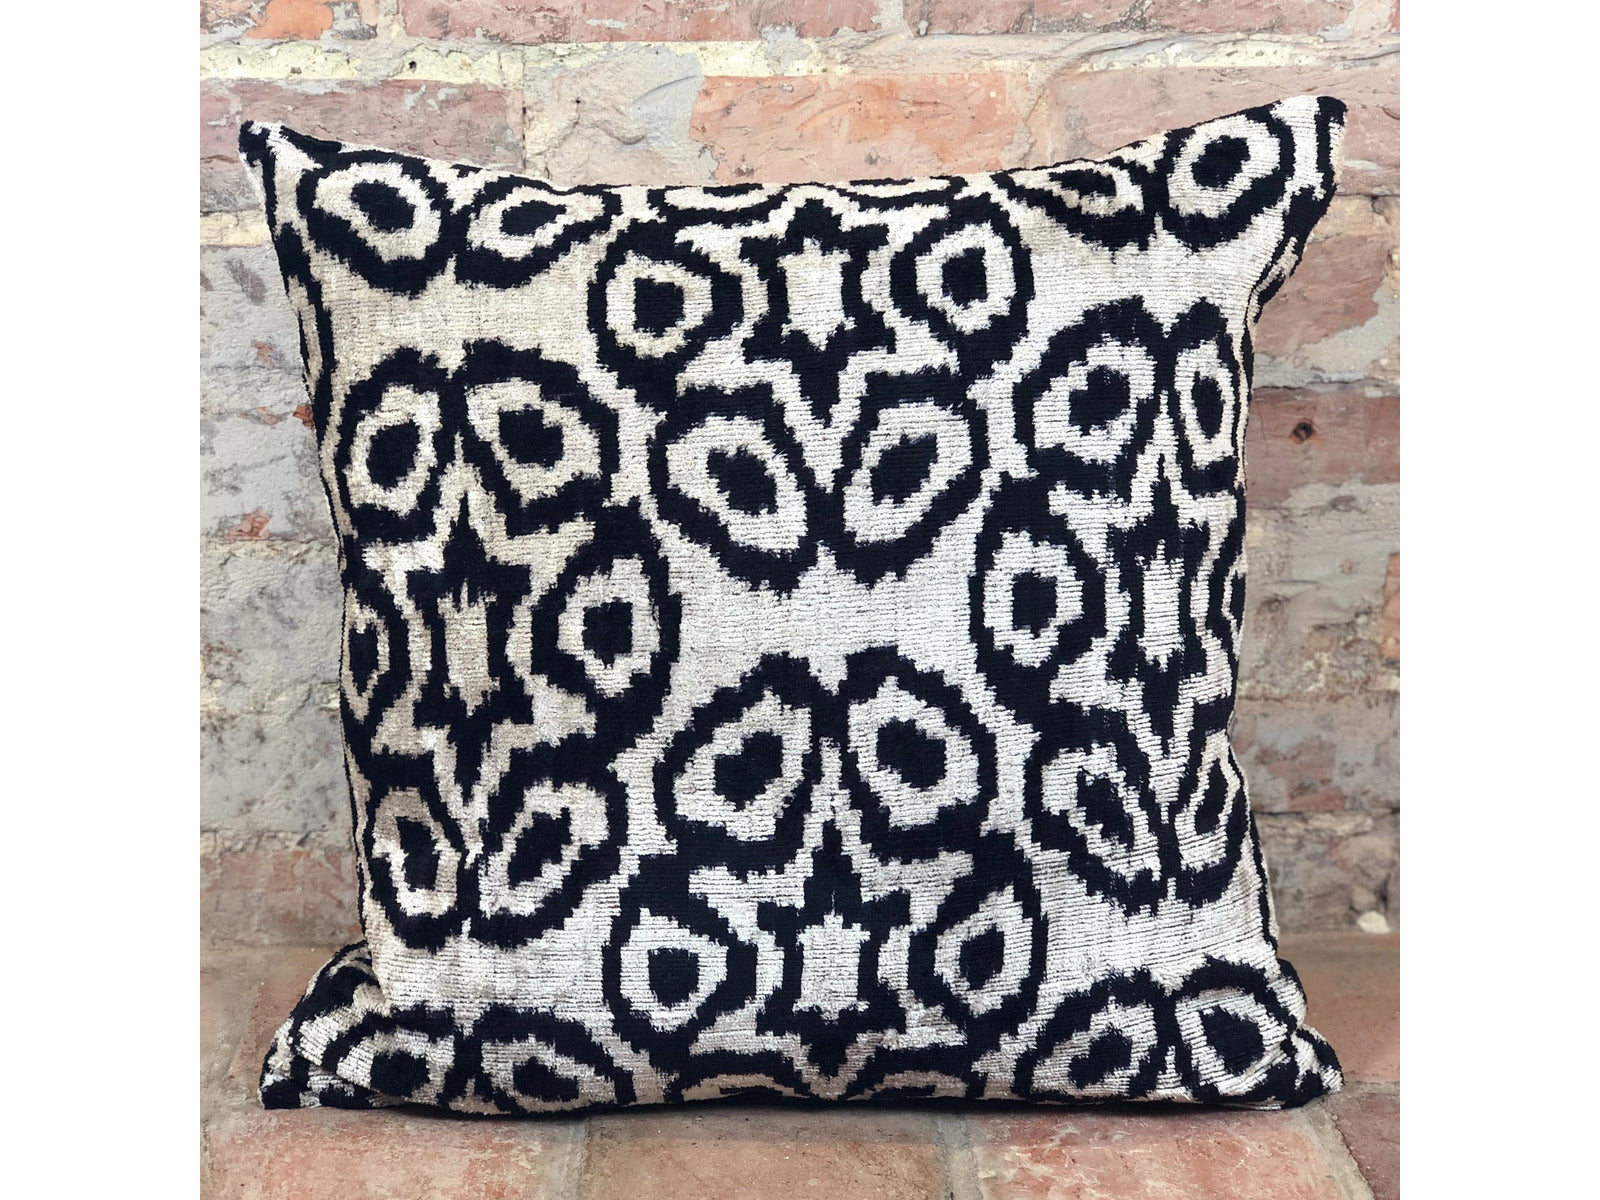 Velvet Ikat Cushion - Rugs of Petworth